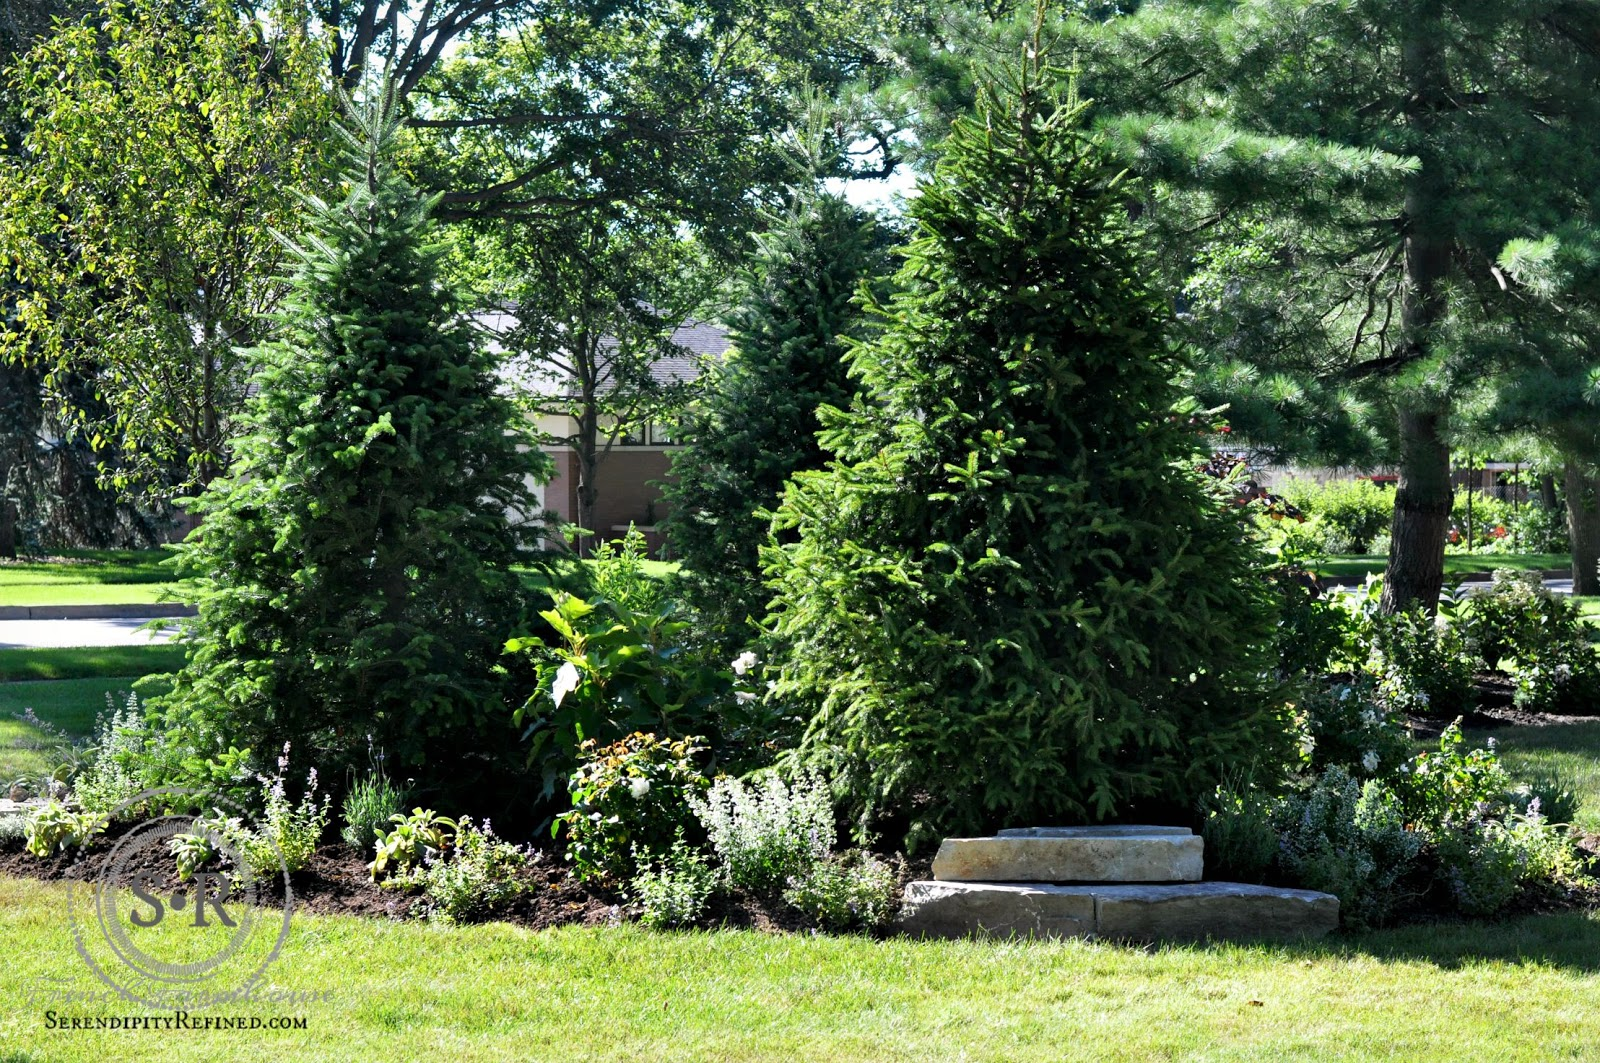 Serendipity refined blog how to landscape a corner lot for The evergreen